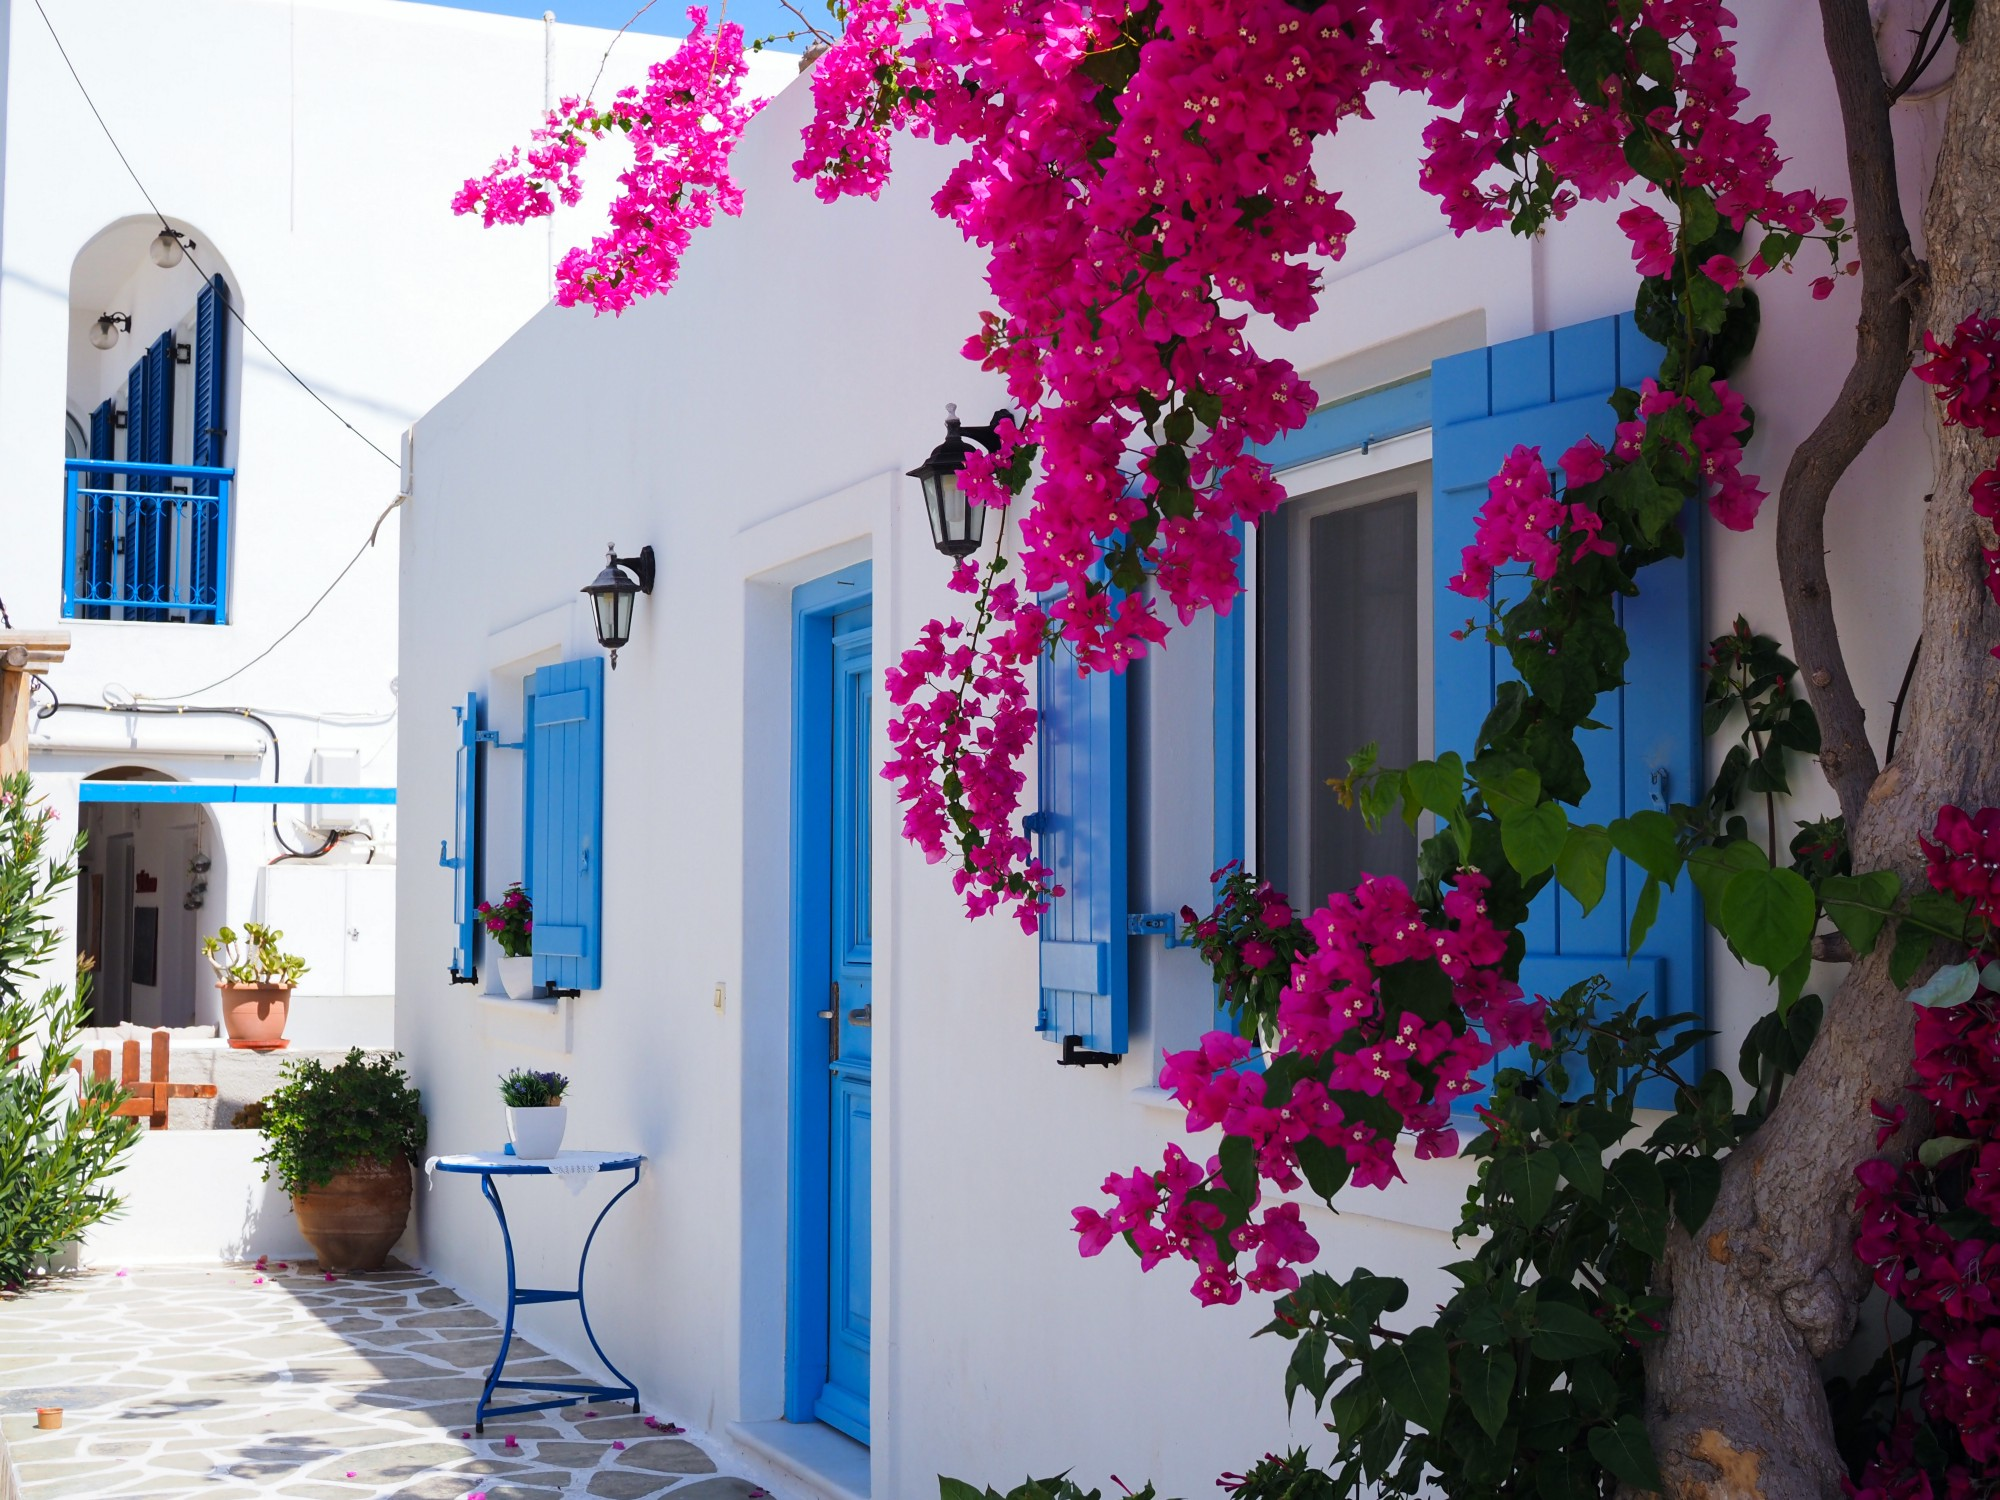 White buildings with blue wood doors and window shutters and a pink bougainvilla in the foreground.